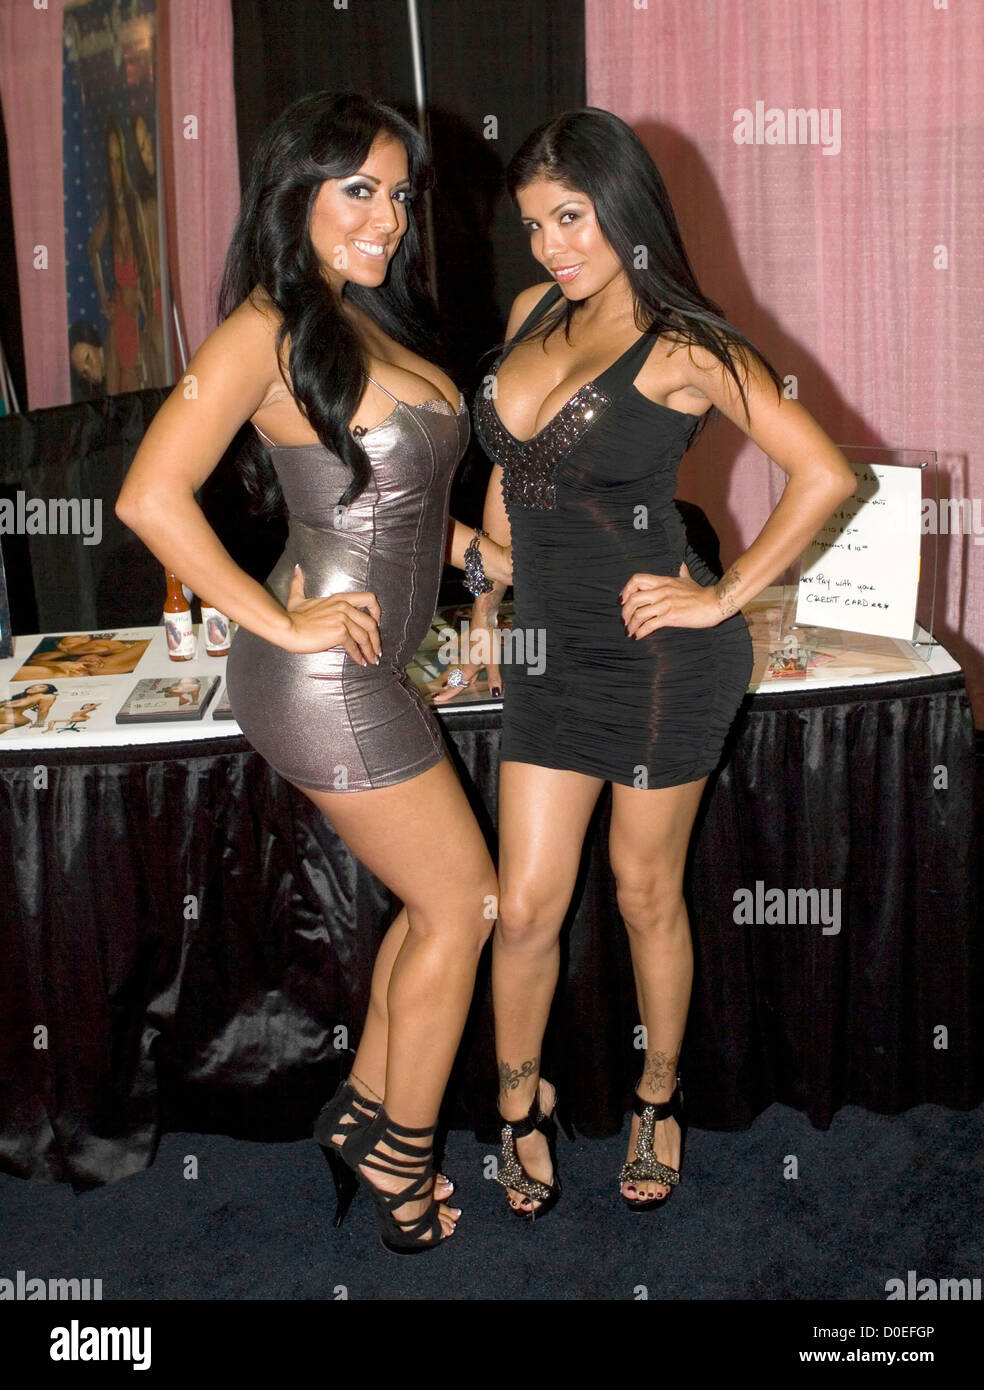 Big very Alexis amore photo what